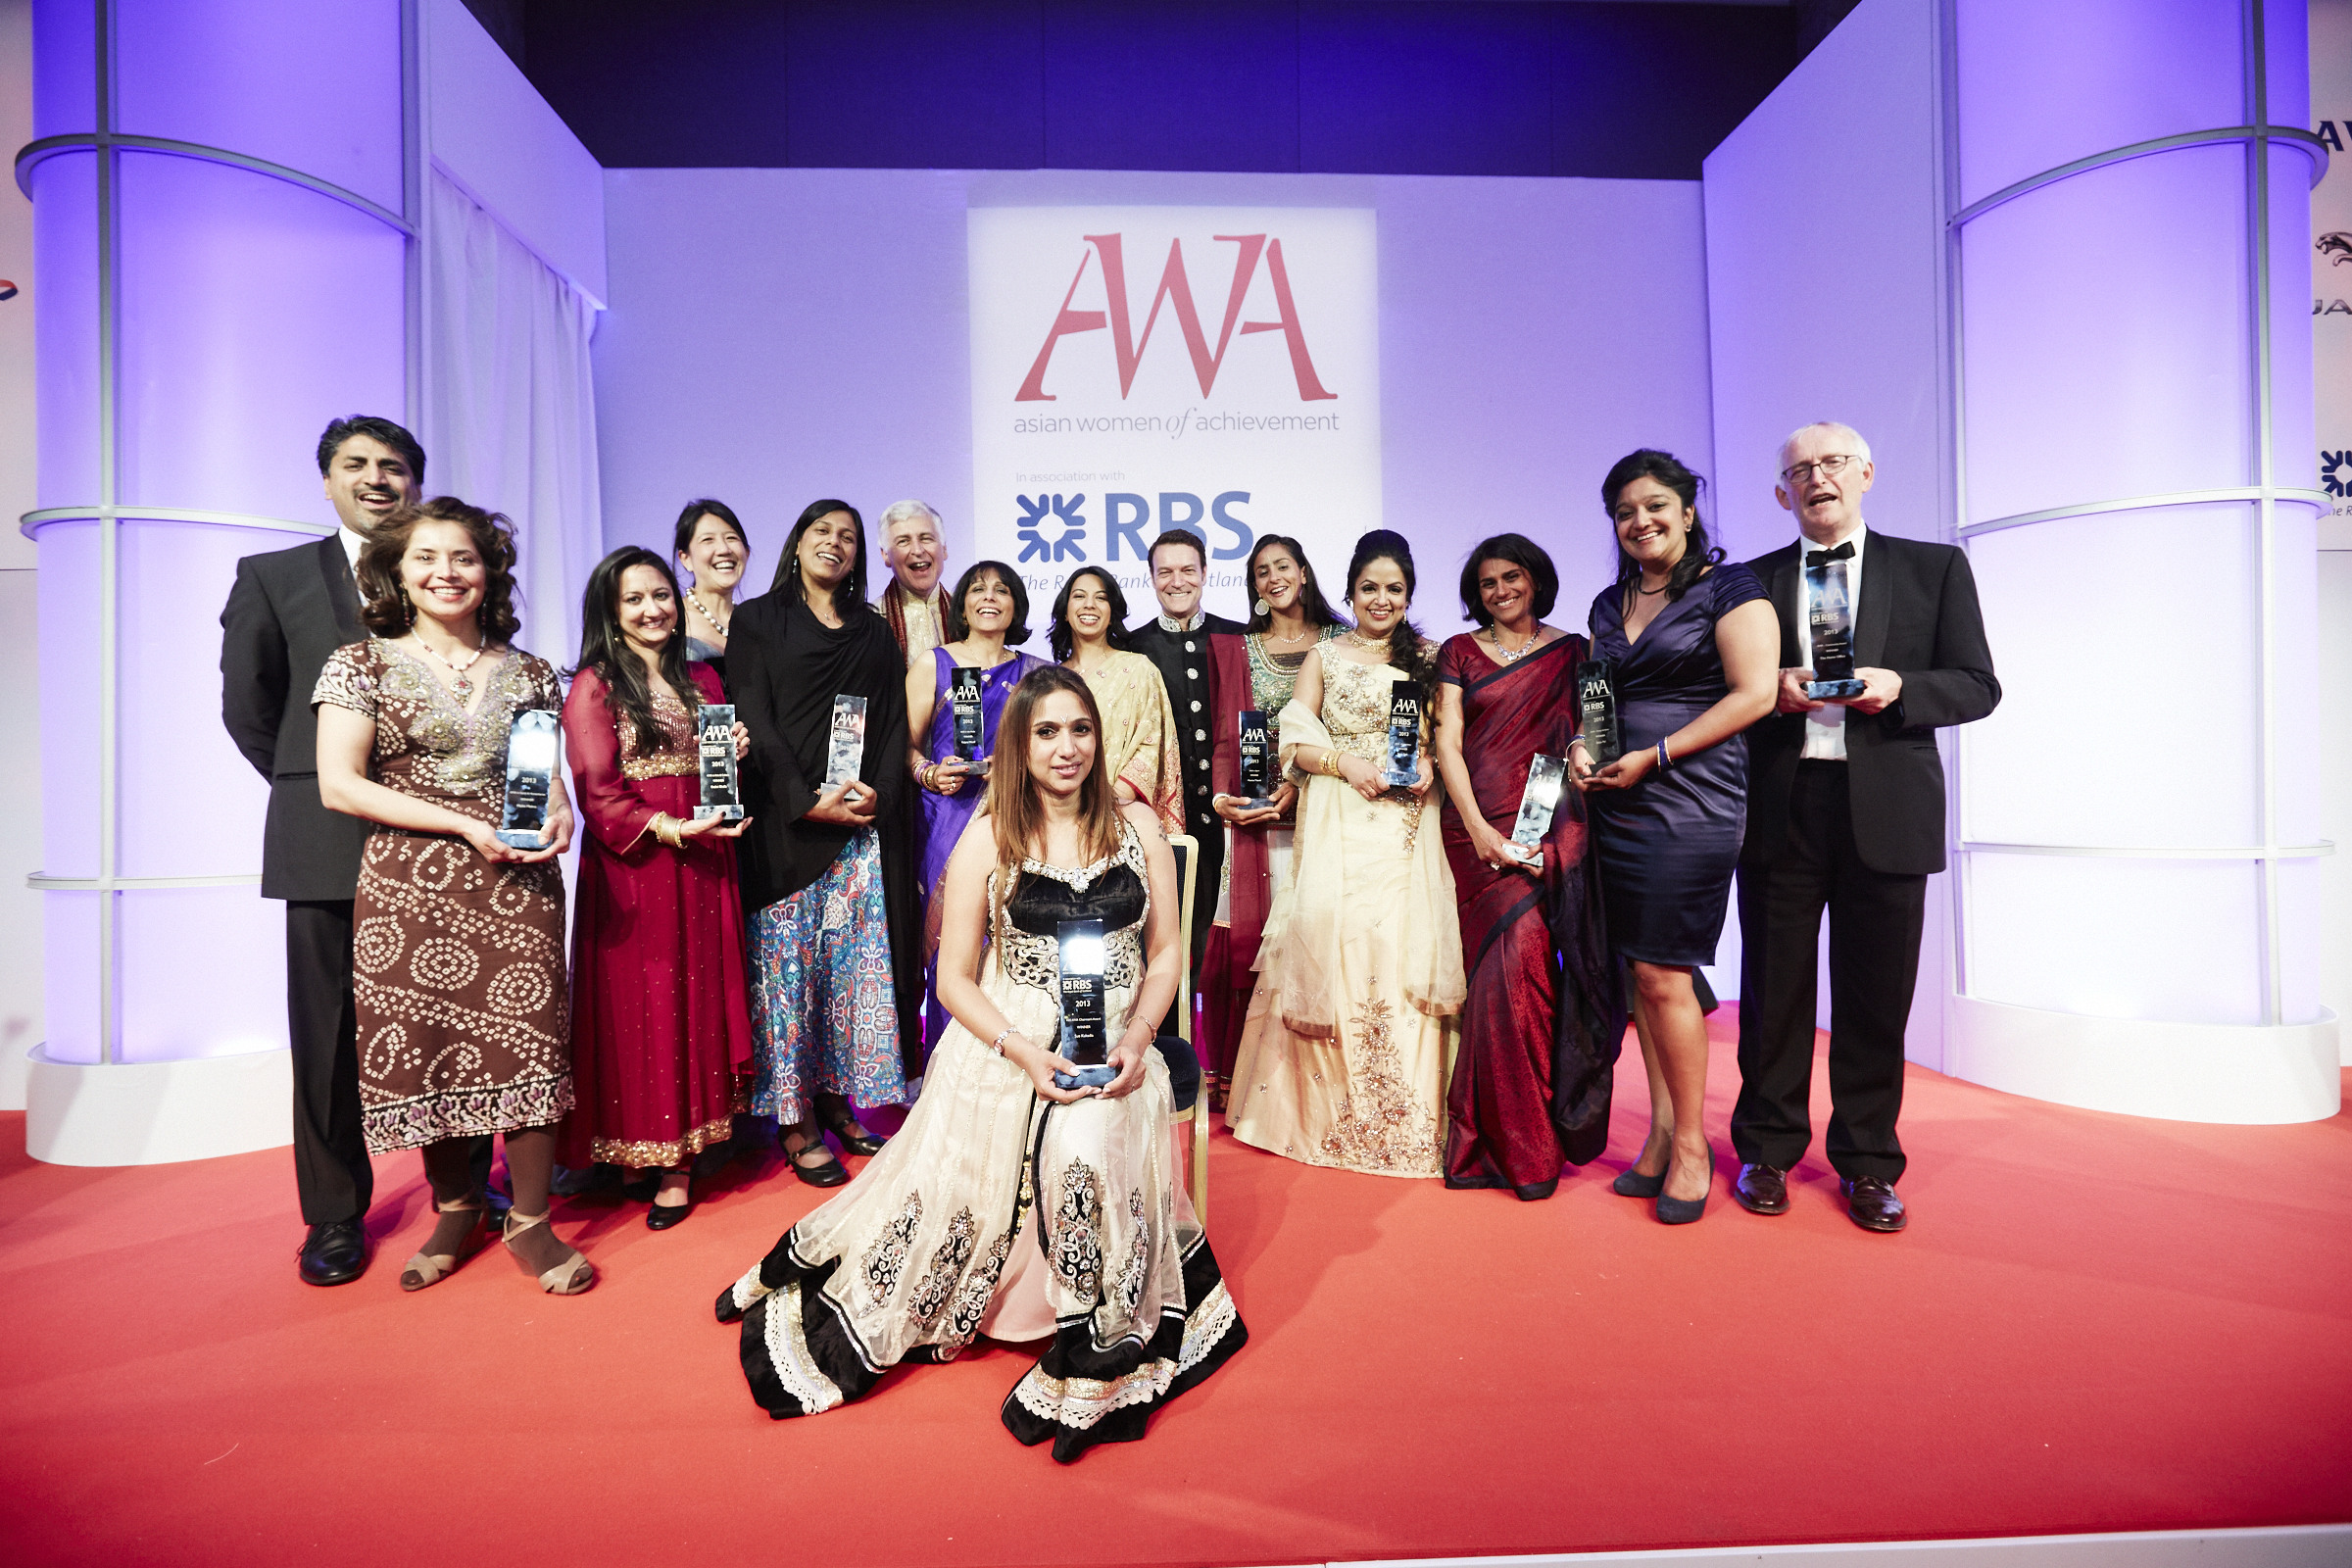 AWA 2013: The winners, the stars, the glamour